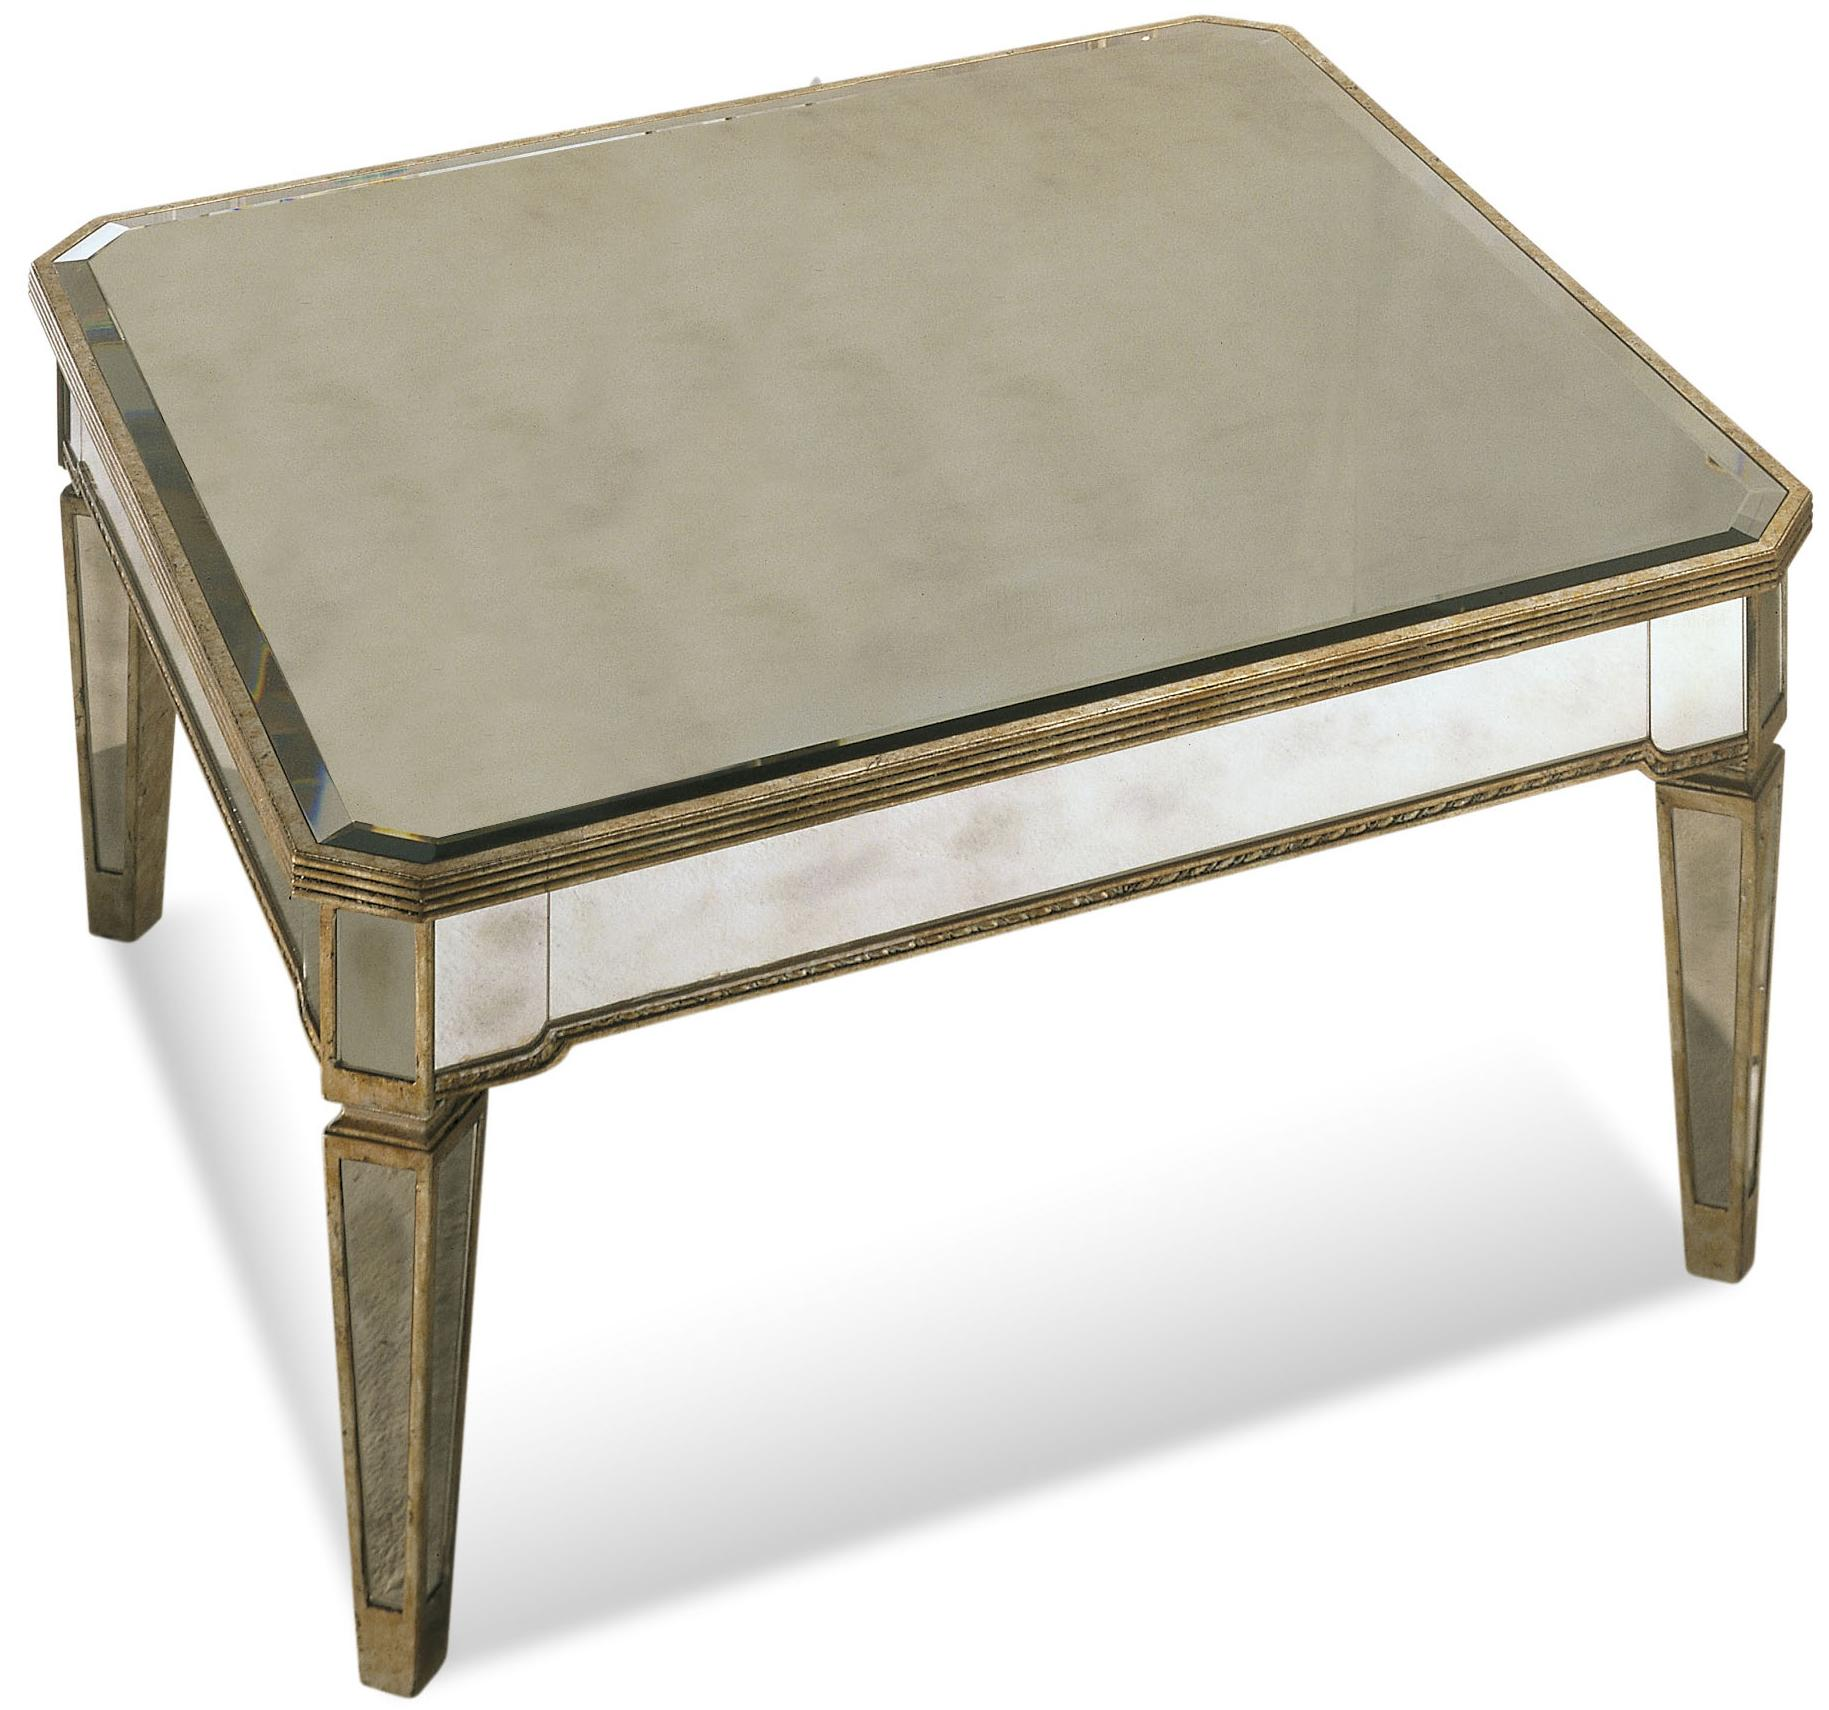 Borghese Square Cocktail Table by Bassett Mirror at Alison Craig Home Furnishings